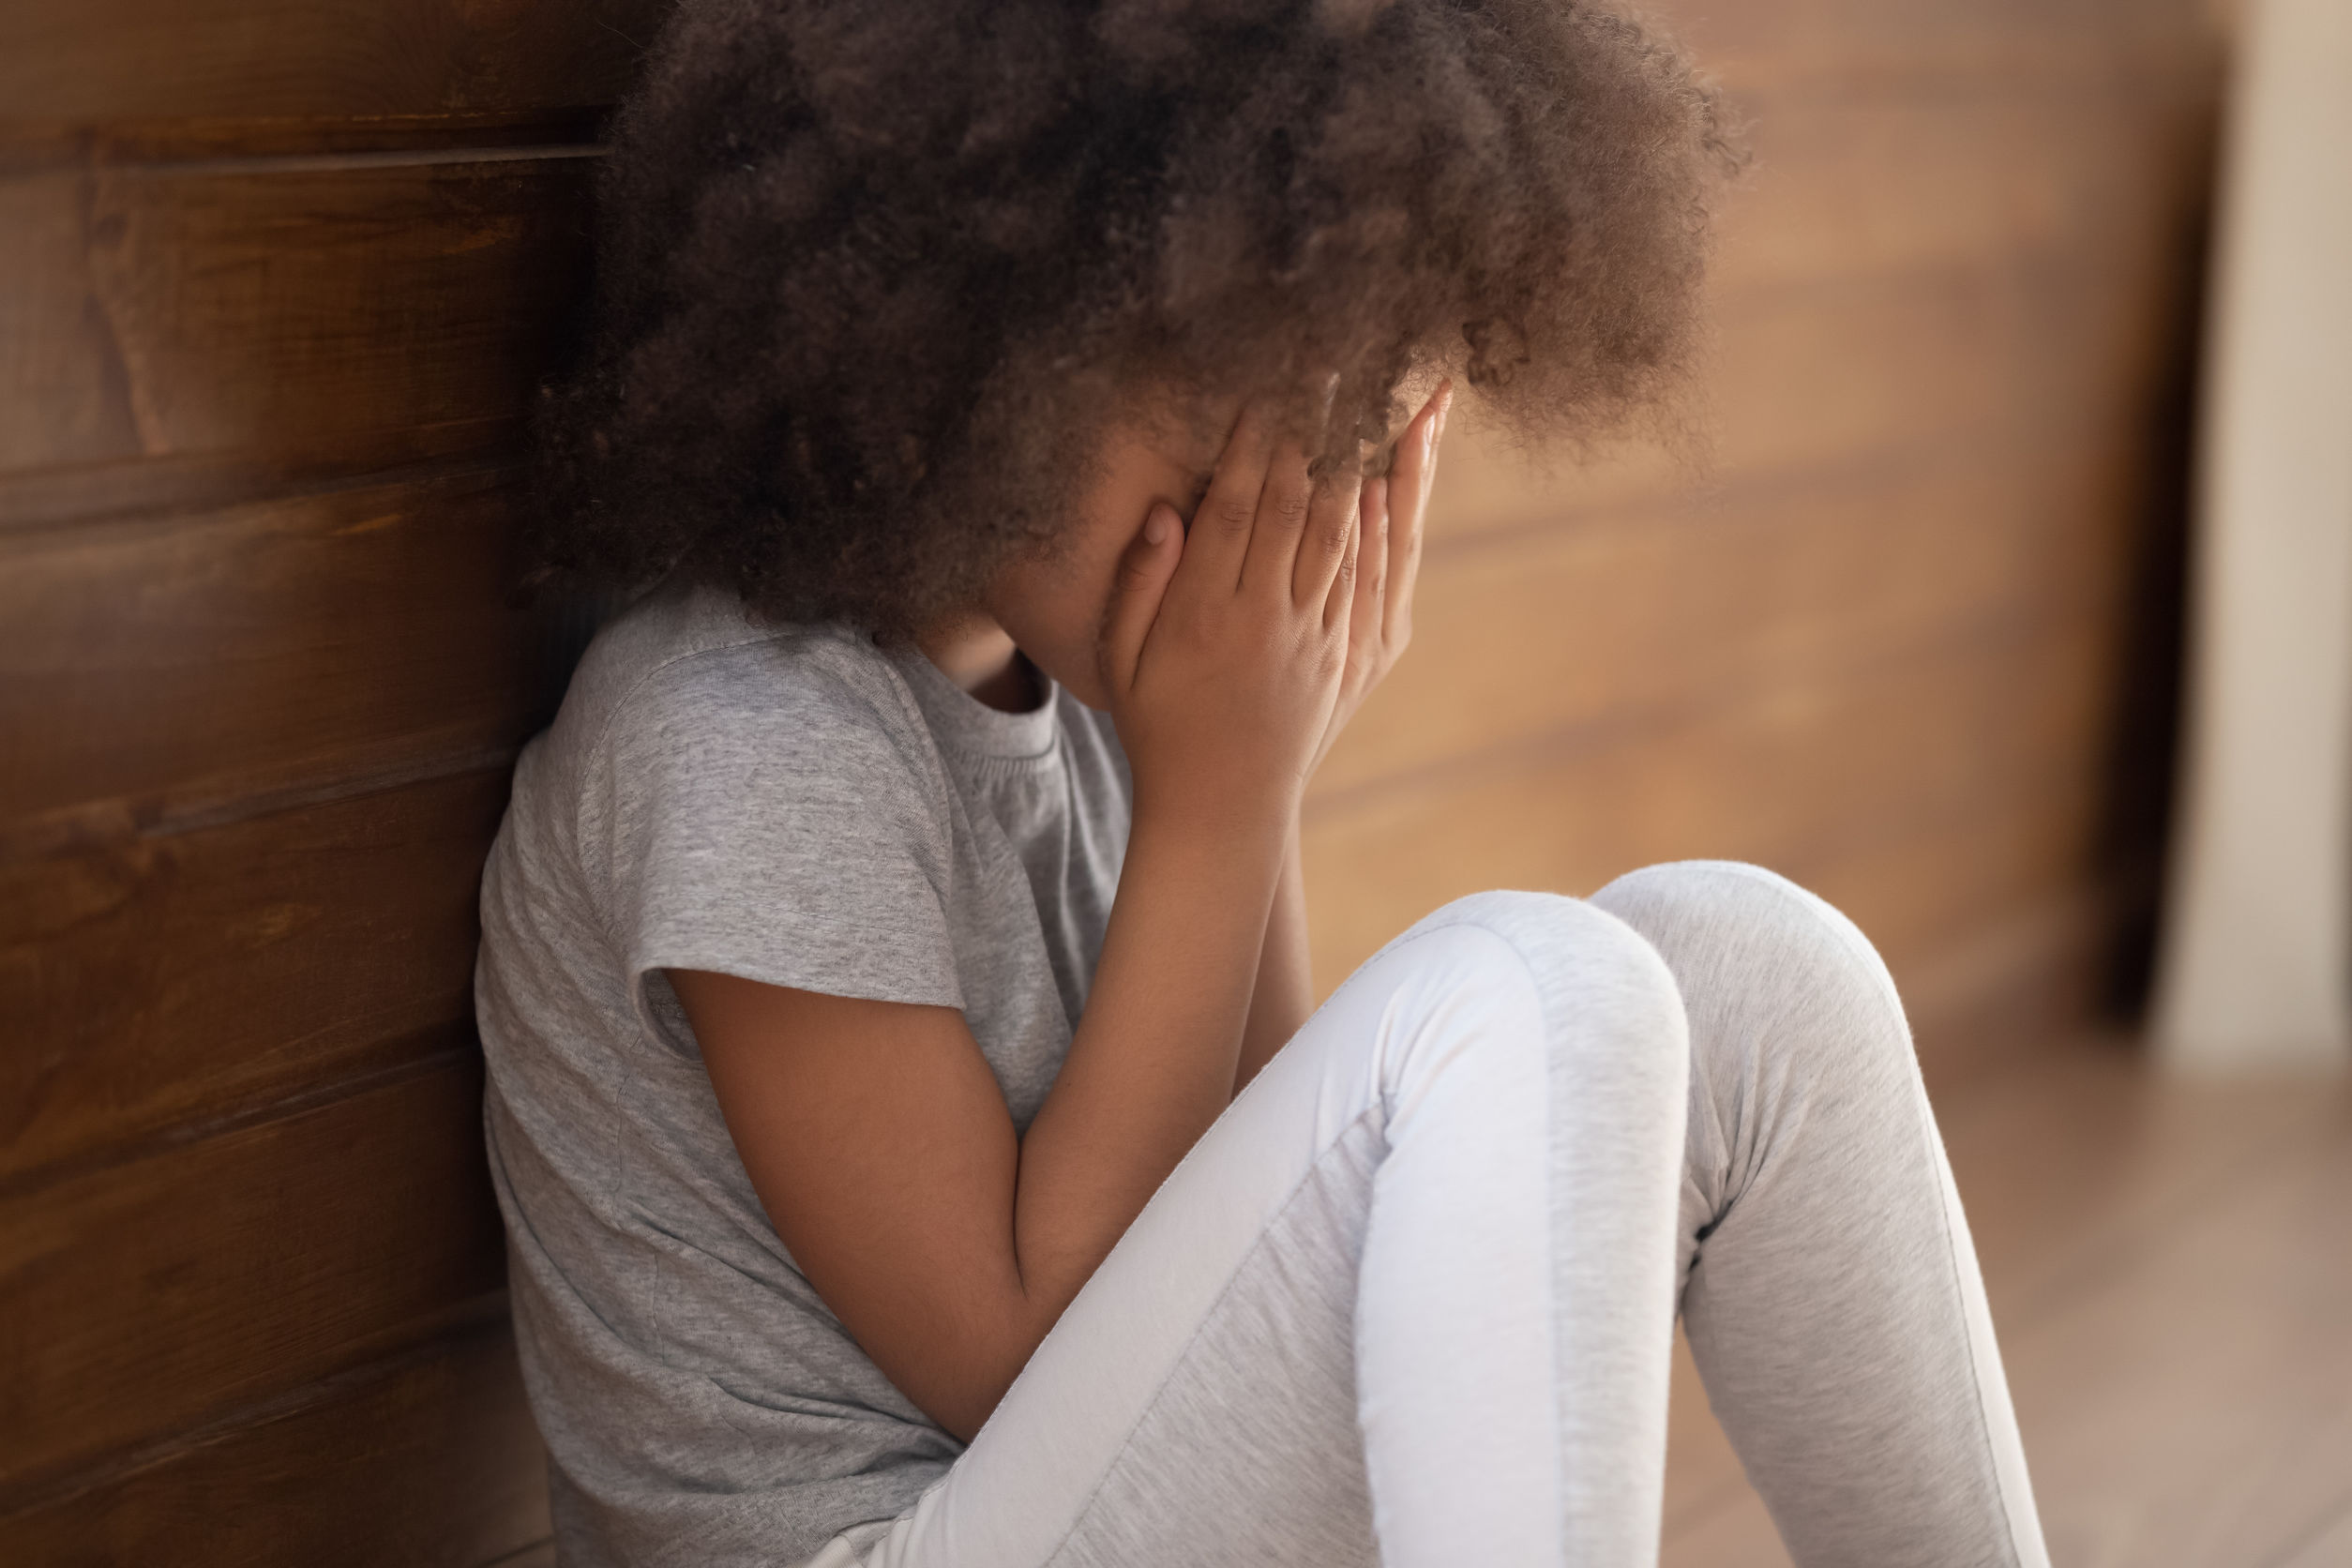 What Are The Signs Of FGM